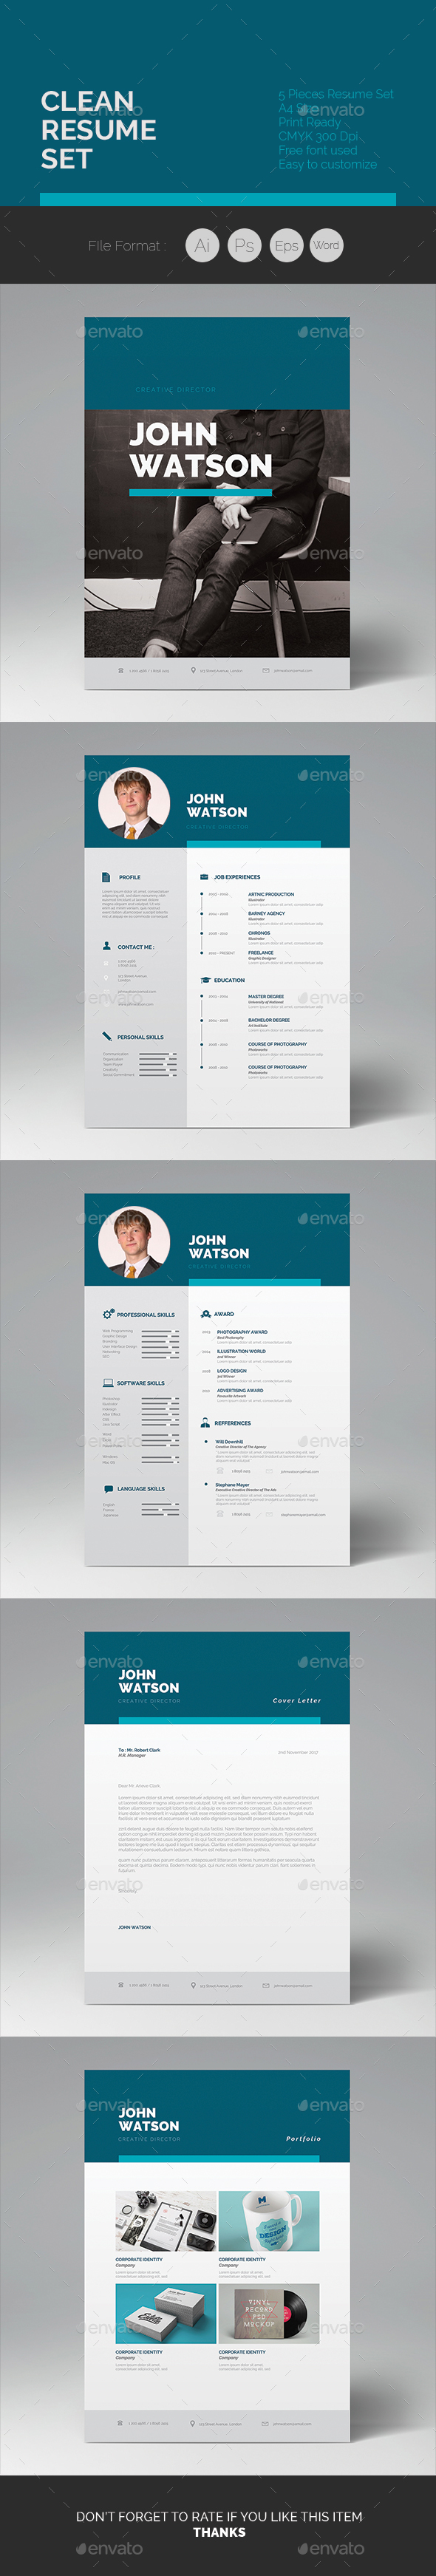 Clean Resume 04 - Resumes Stationery